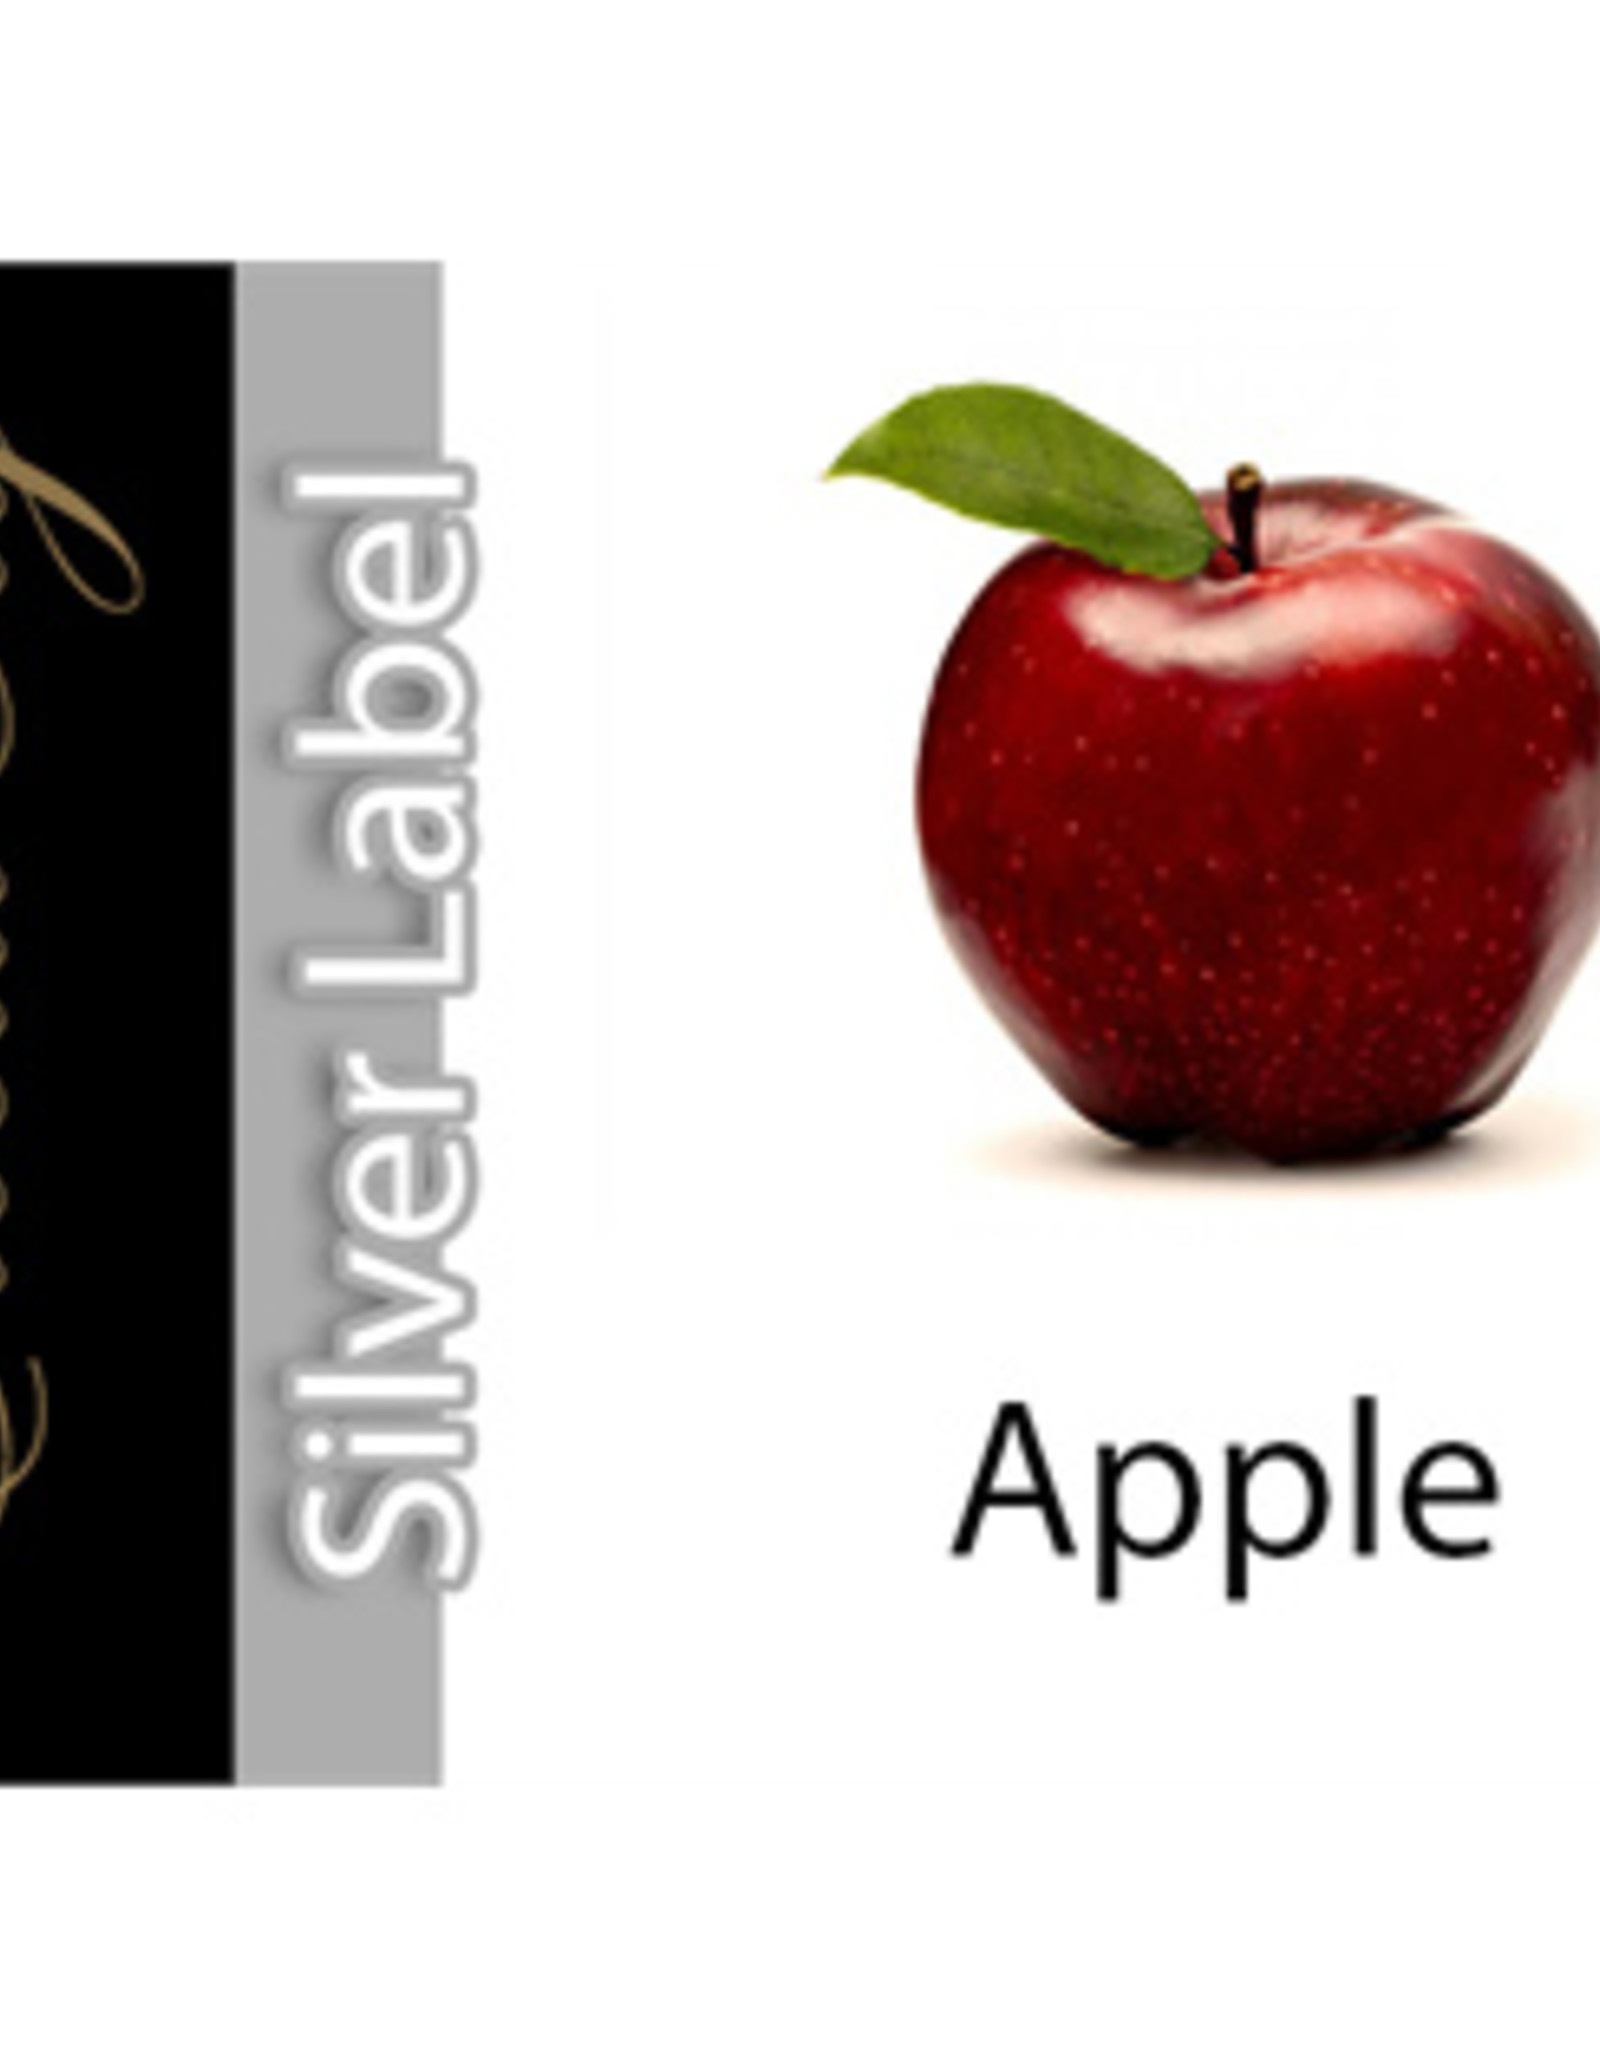 Exclucig Exclucig Silver Label E-liquid Apple 0 mg Nicotine